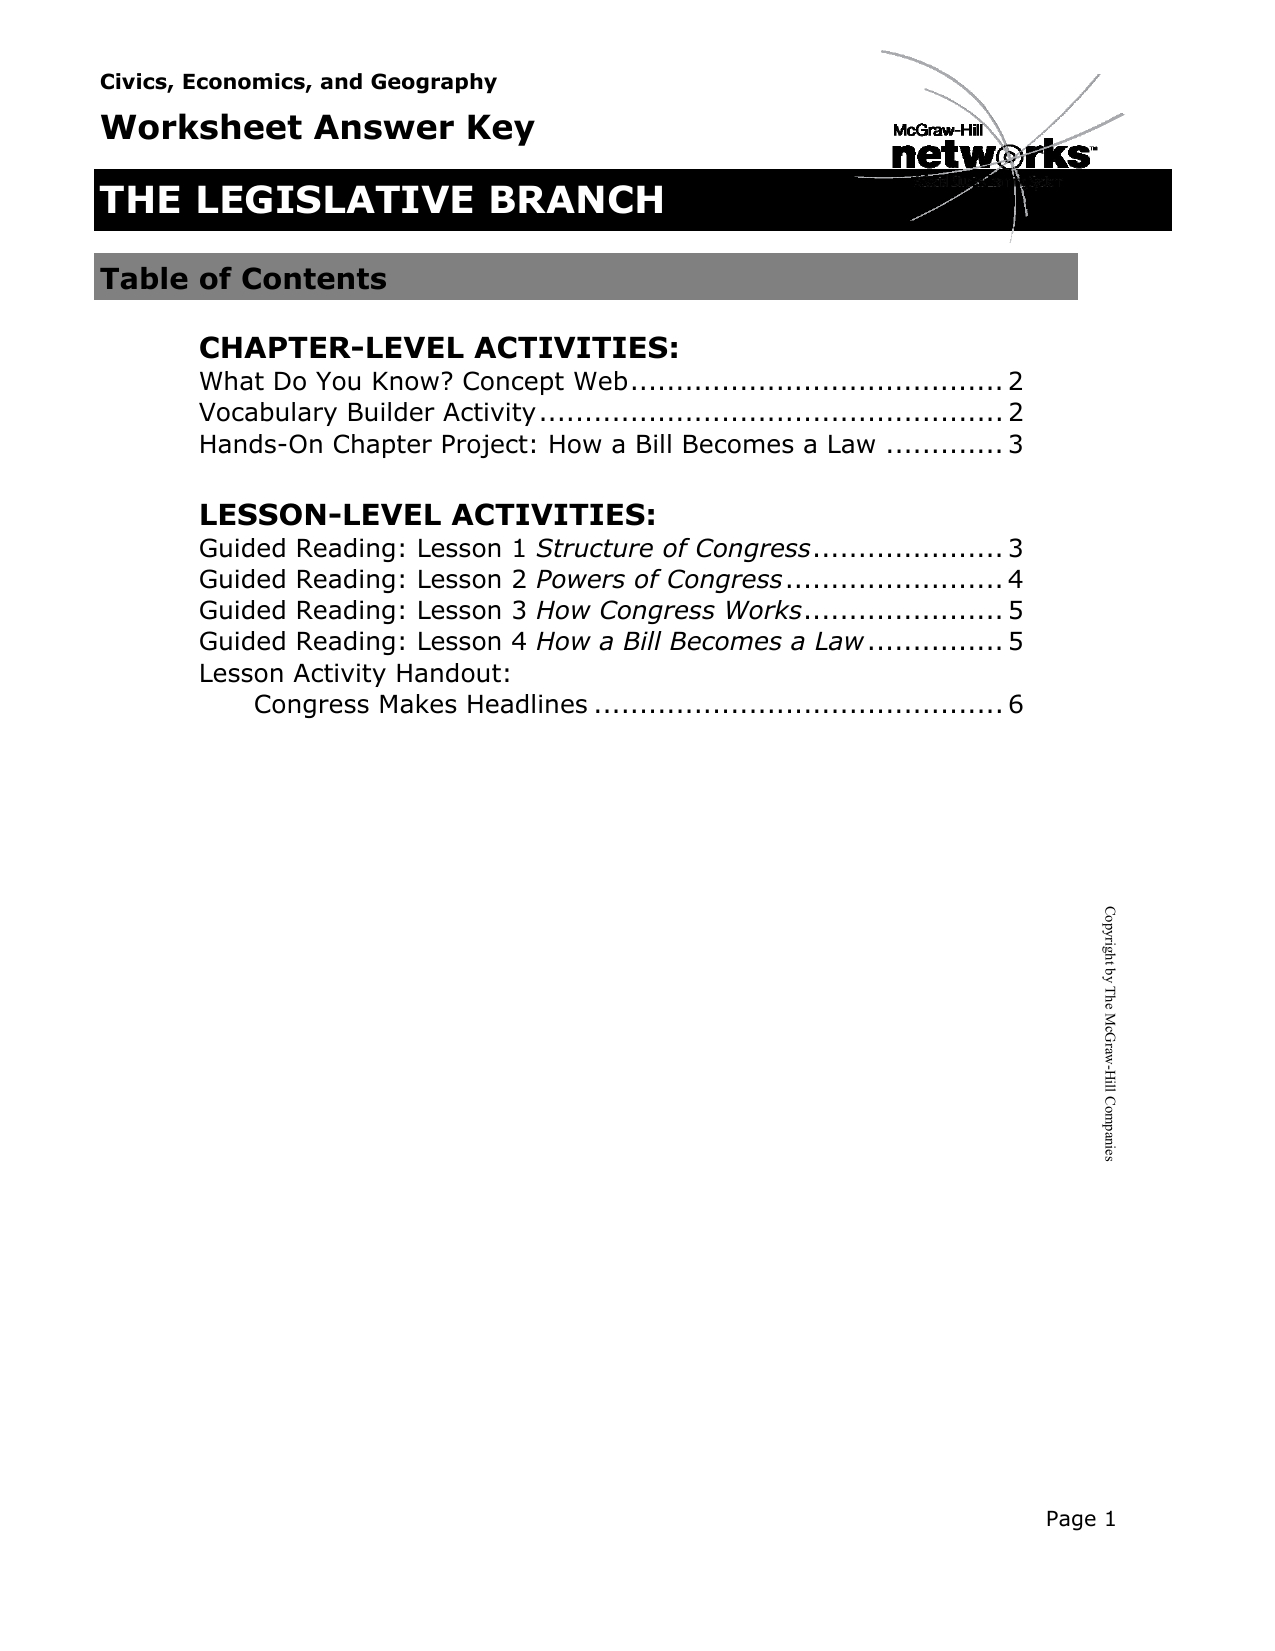 Legislative Branch Worksheet Answers